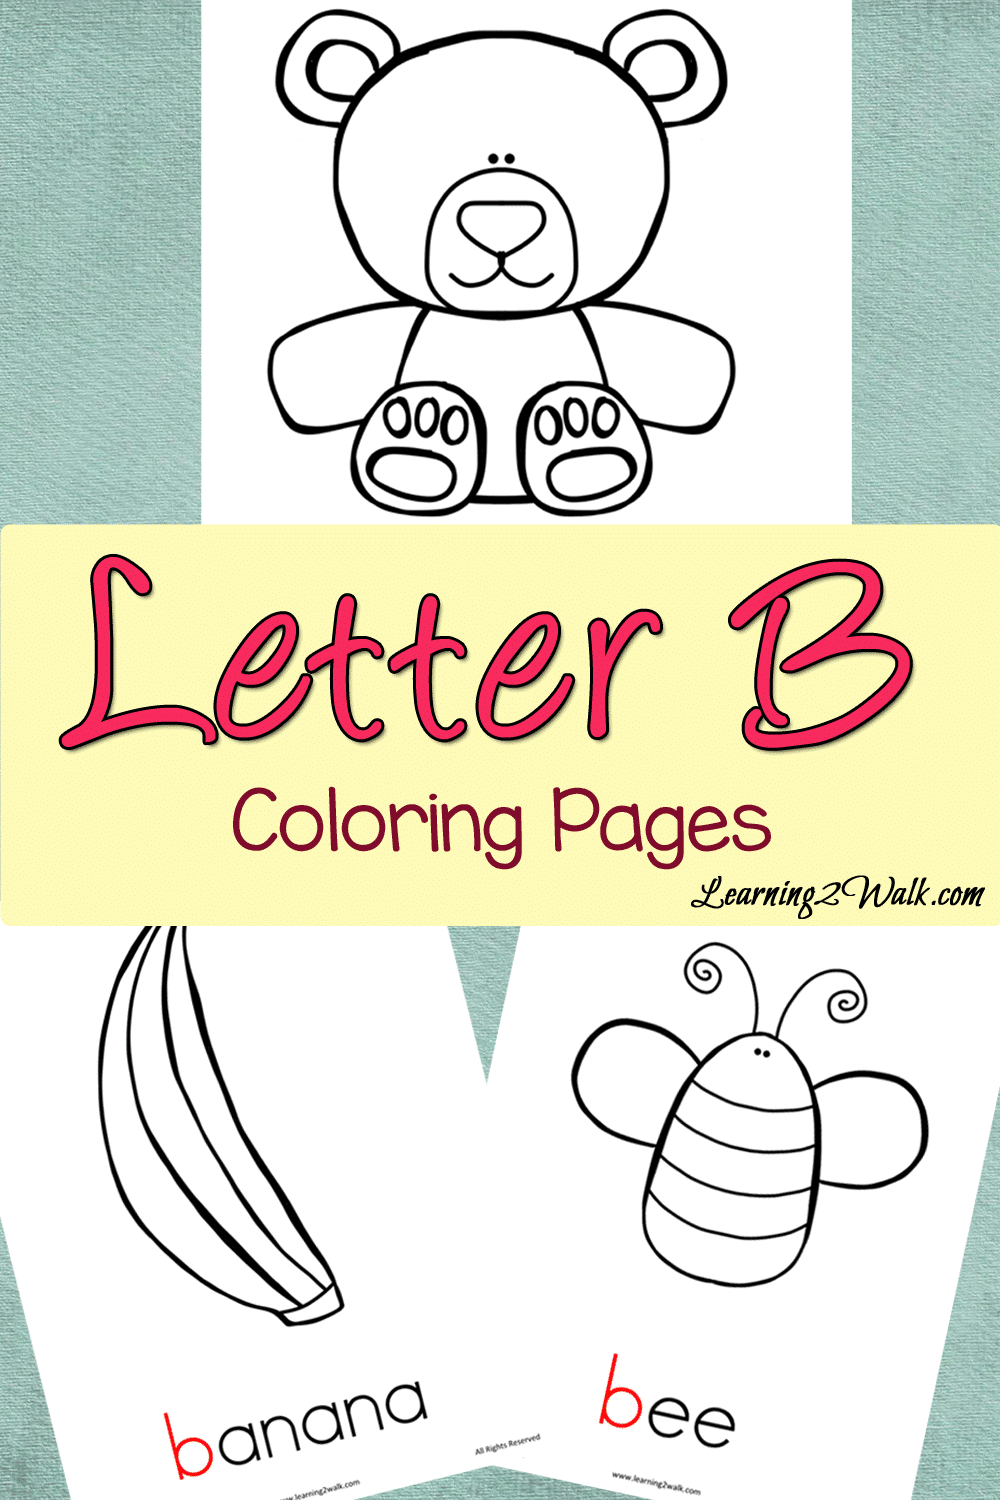 Preschool Letter Activities: Letter B Colouring Pages